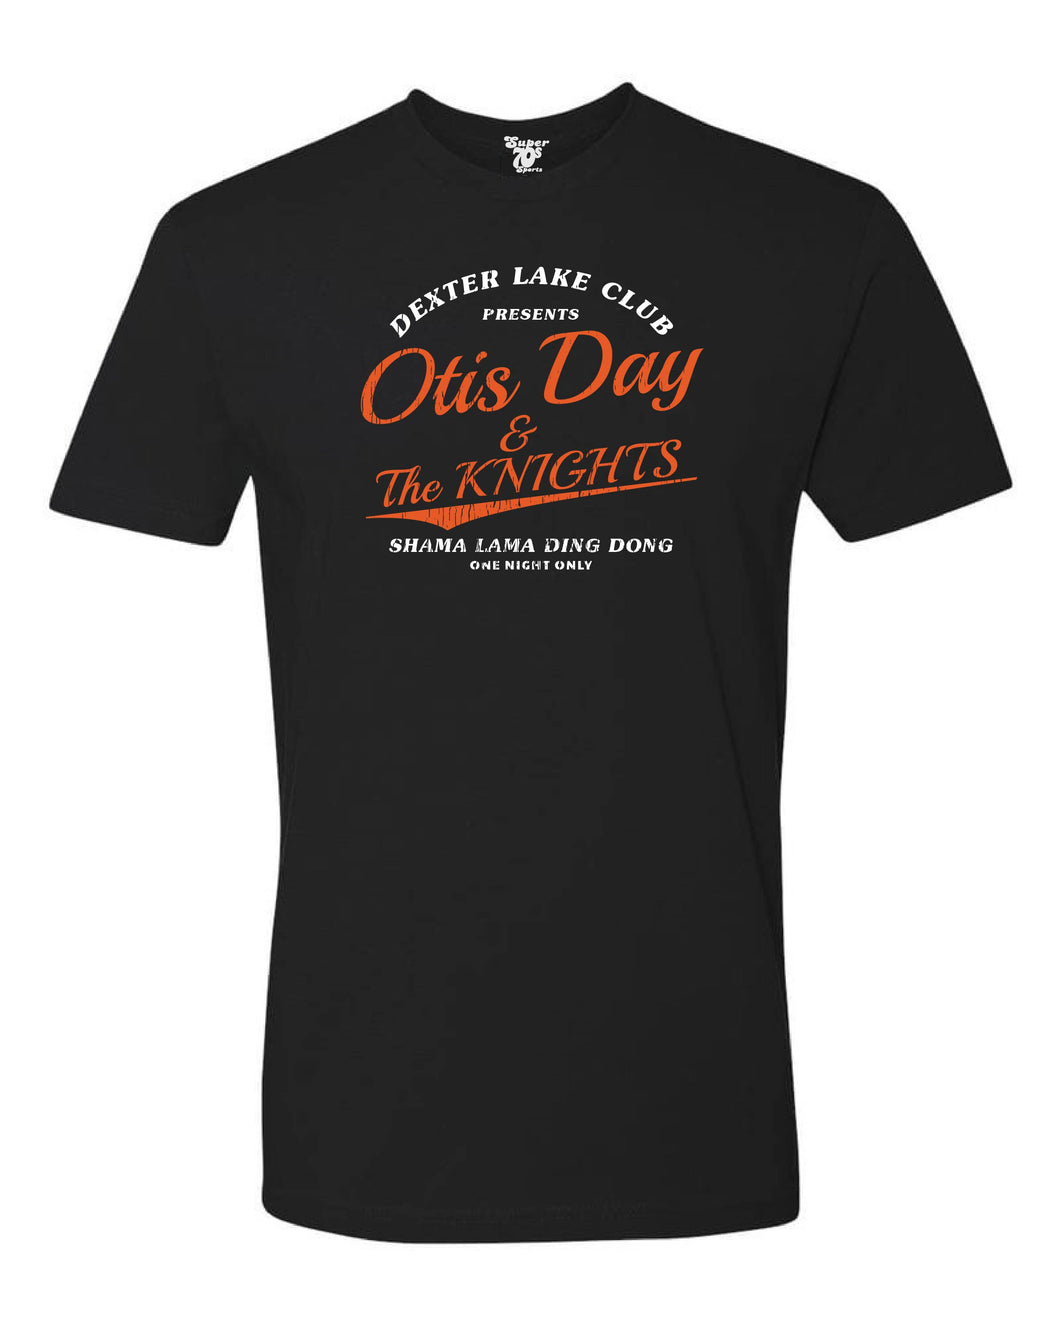 Otis Day & The Knights Tee